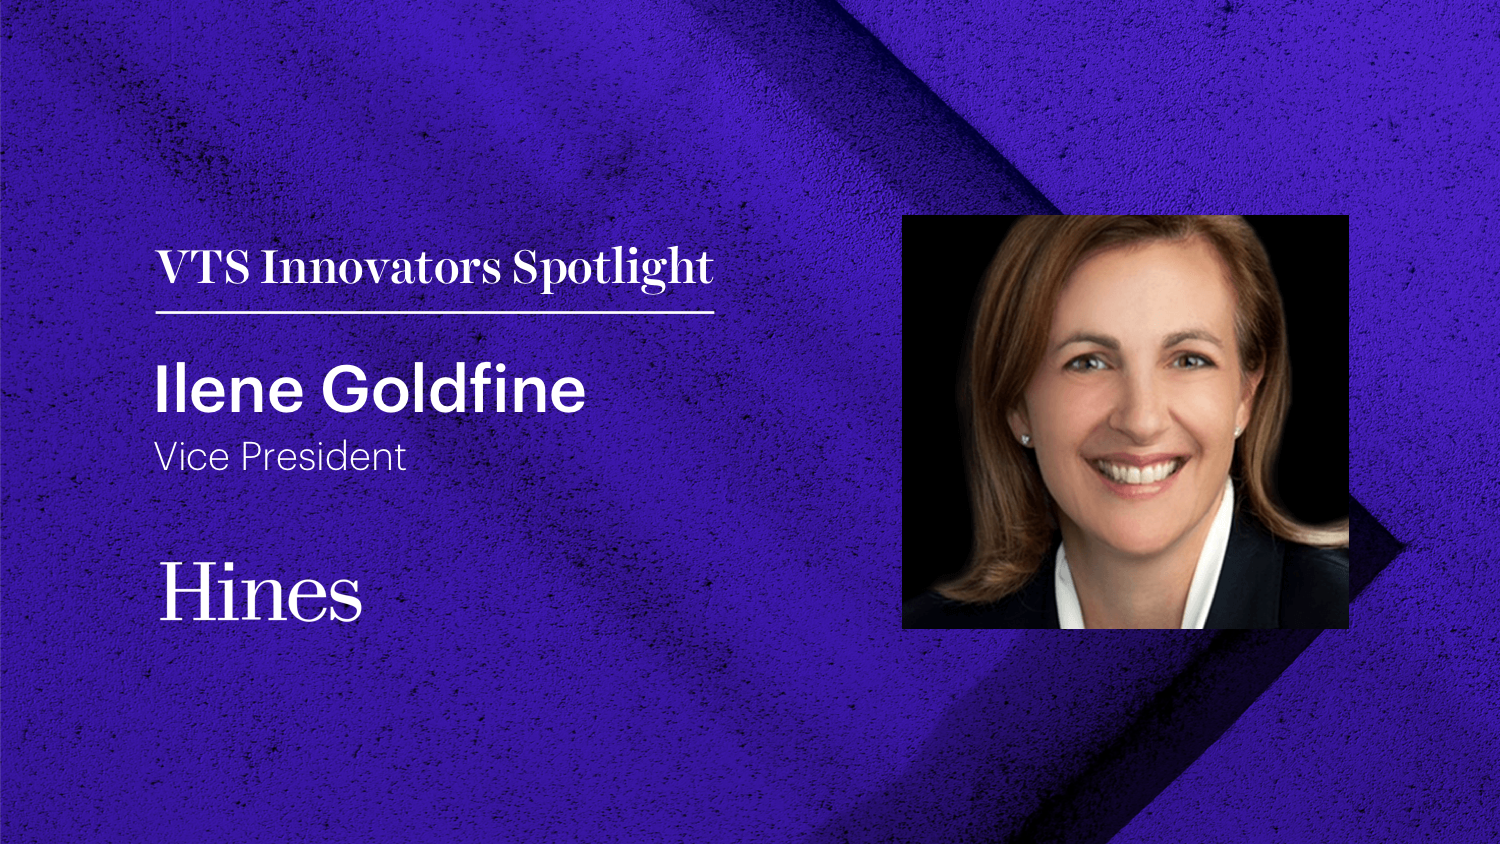 VTS Innovators Spotlight: Ilene Goldfine, Vice President, Hines